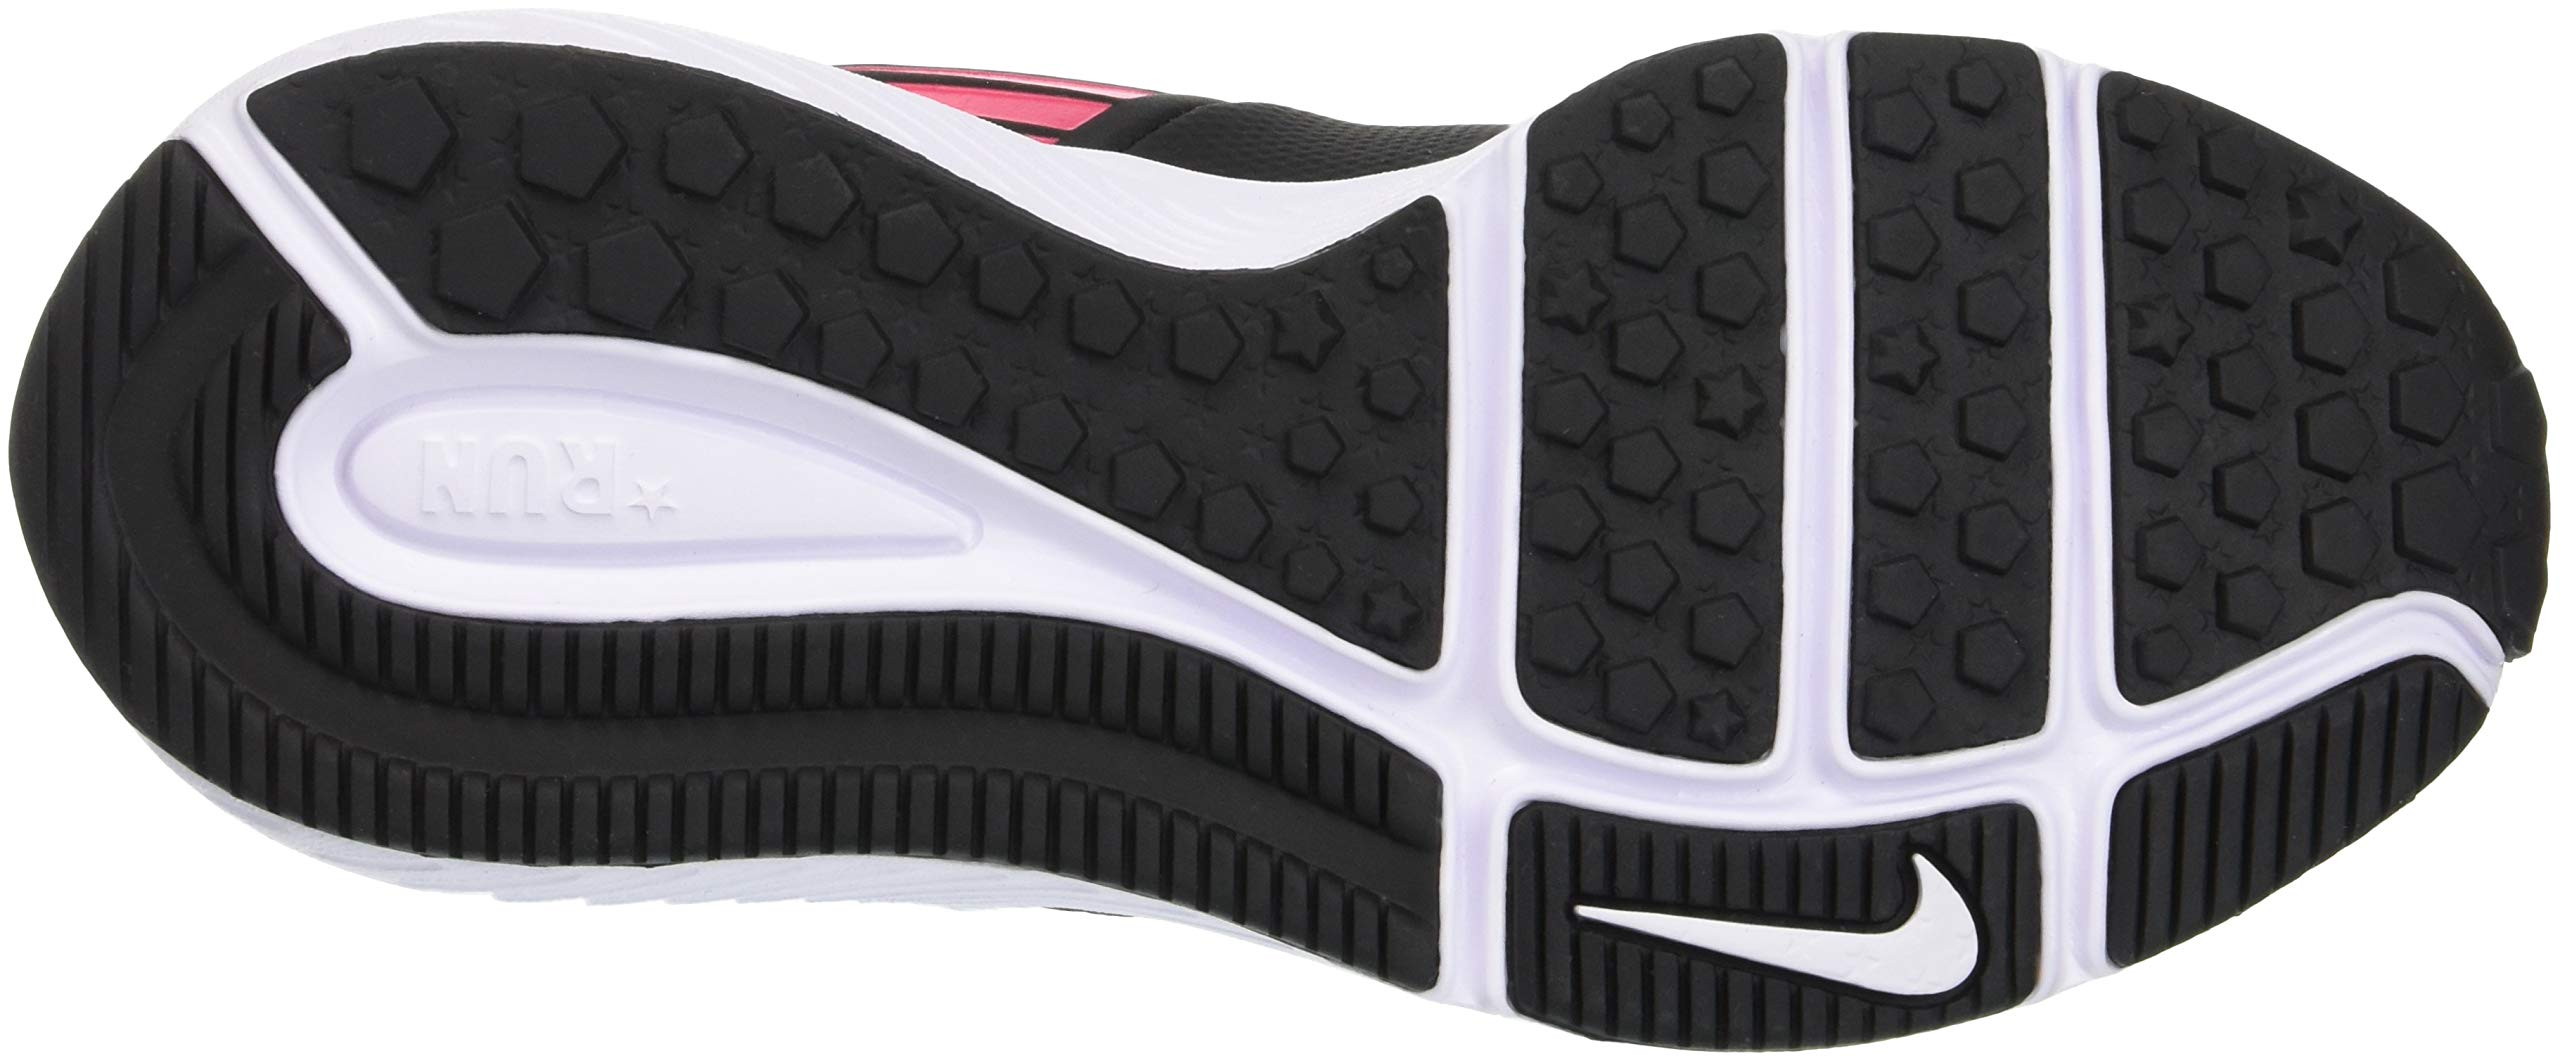 Nike Girl's Star Runner (PSV) Pre-School Shoe Black/Metallic Silver/Racer Pink/Volt Size 1.5 M US by Nike (Image #3)